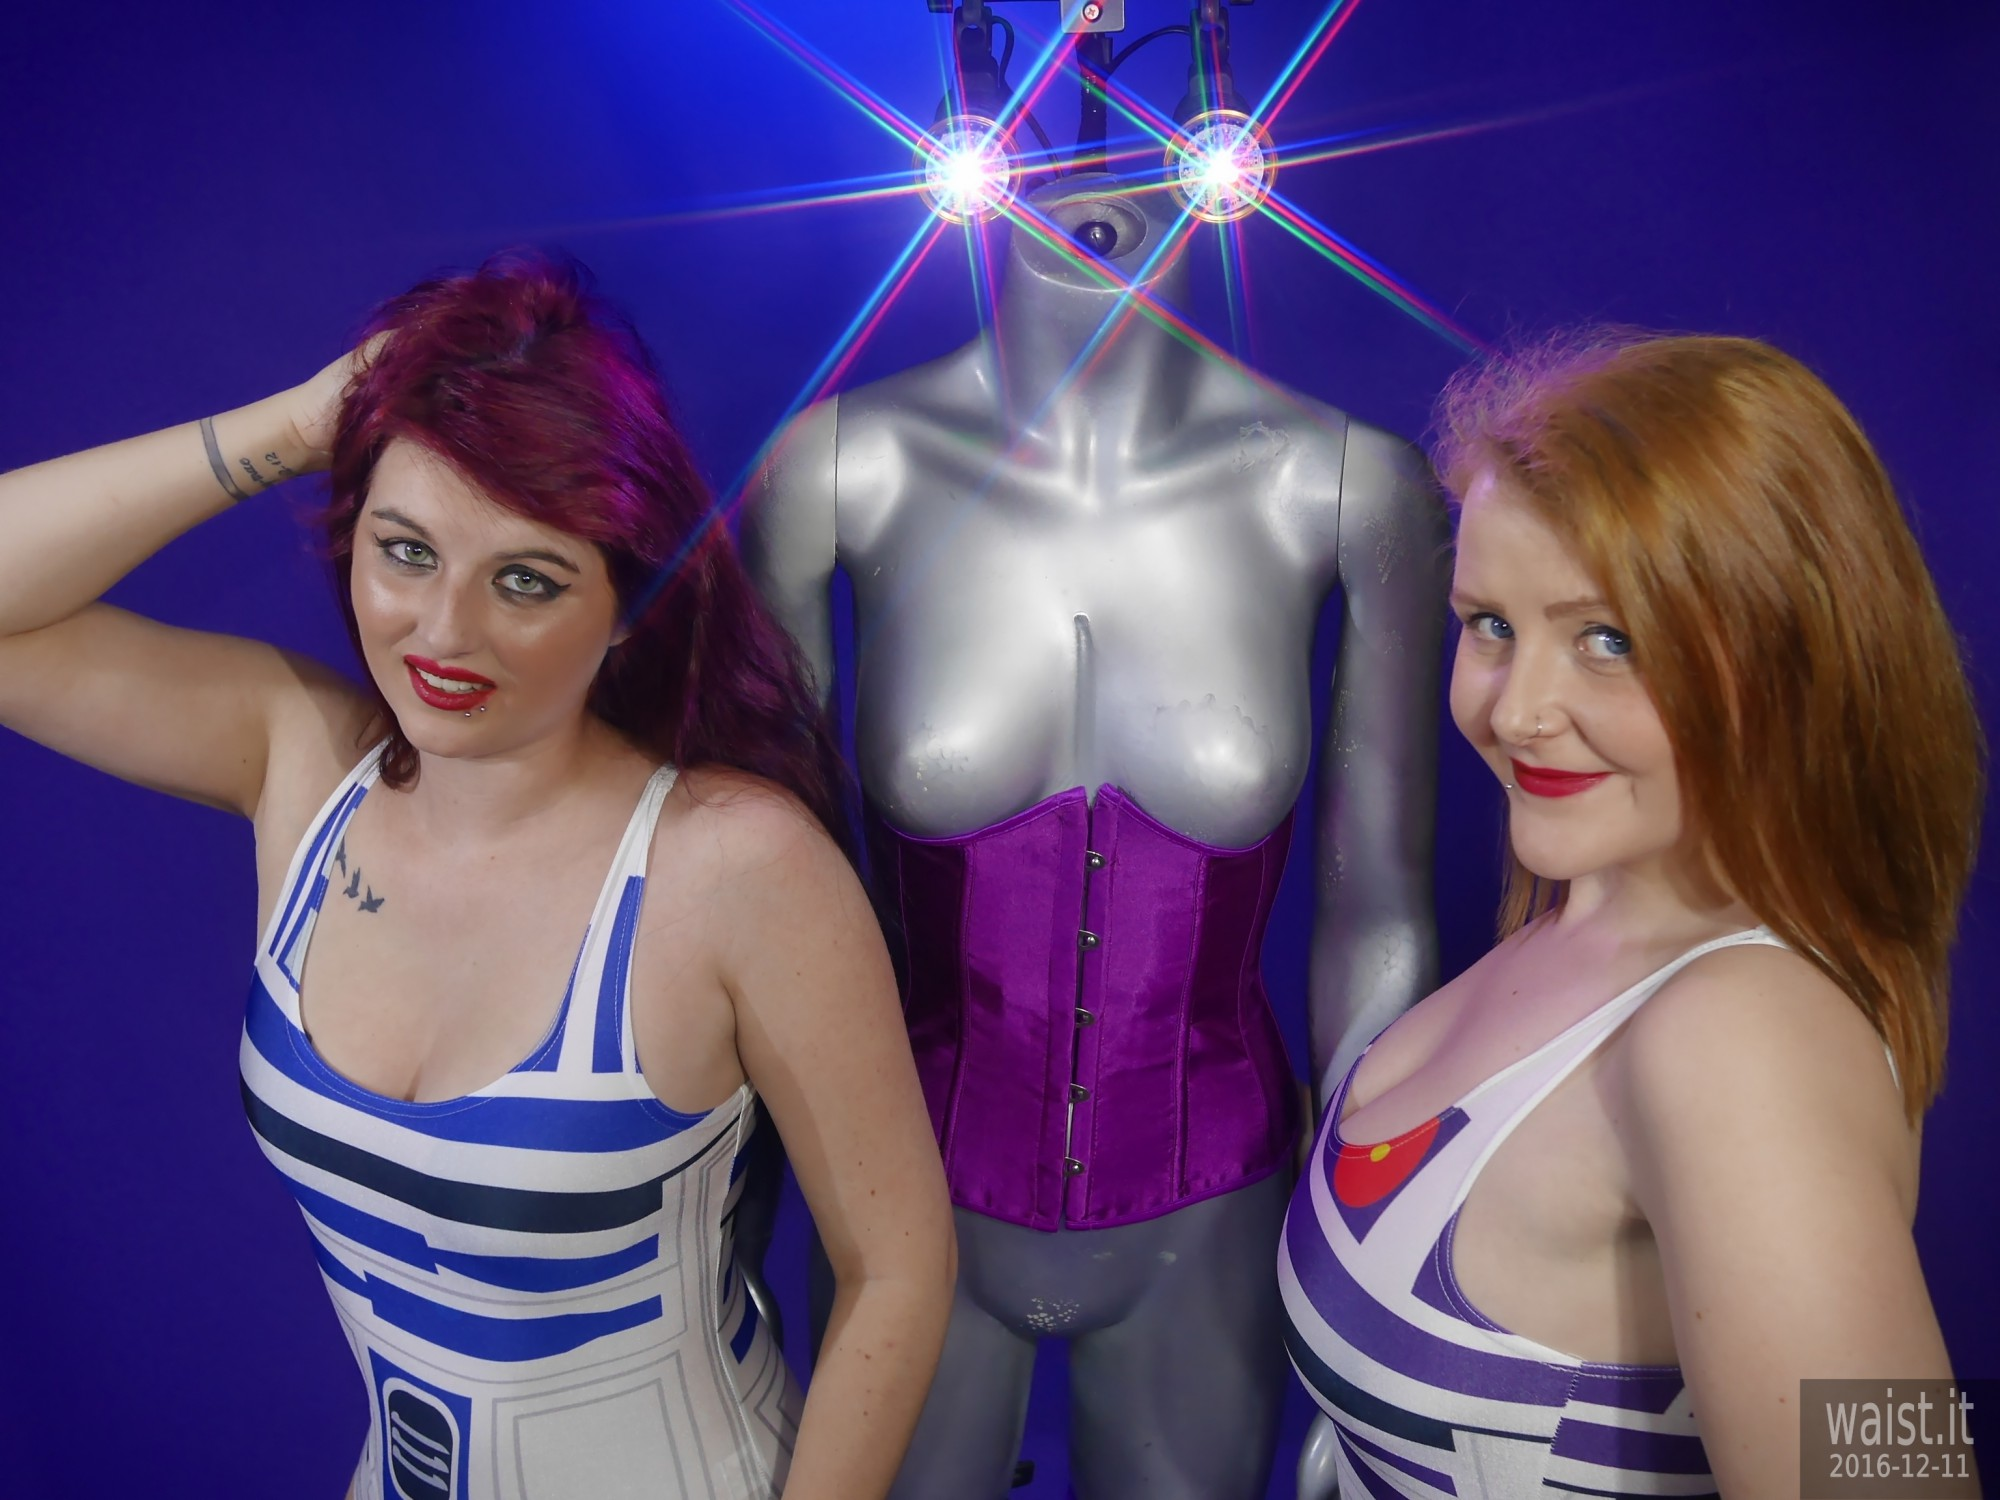 2019-12-11 Miss Danni Lou and her friend Char in R2D2 swimsuits